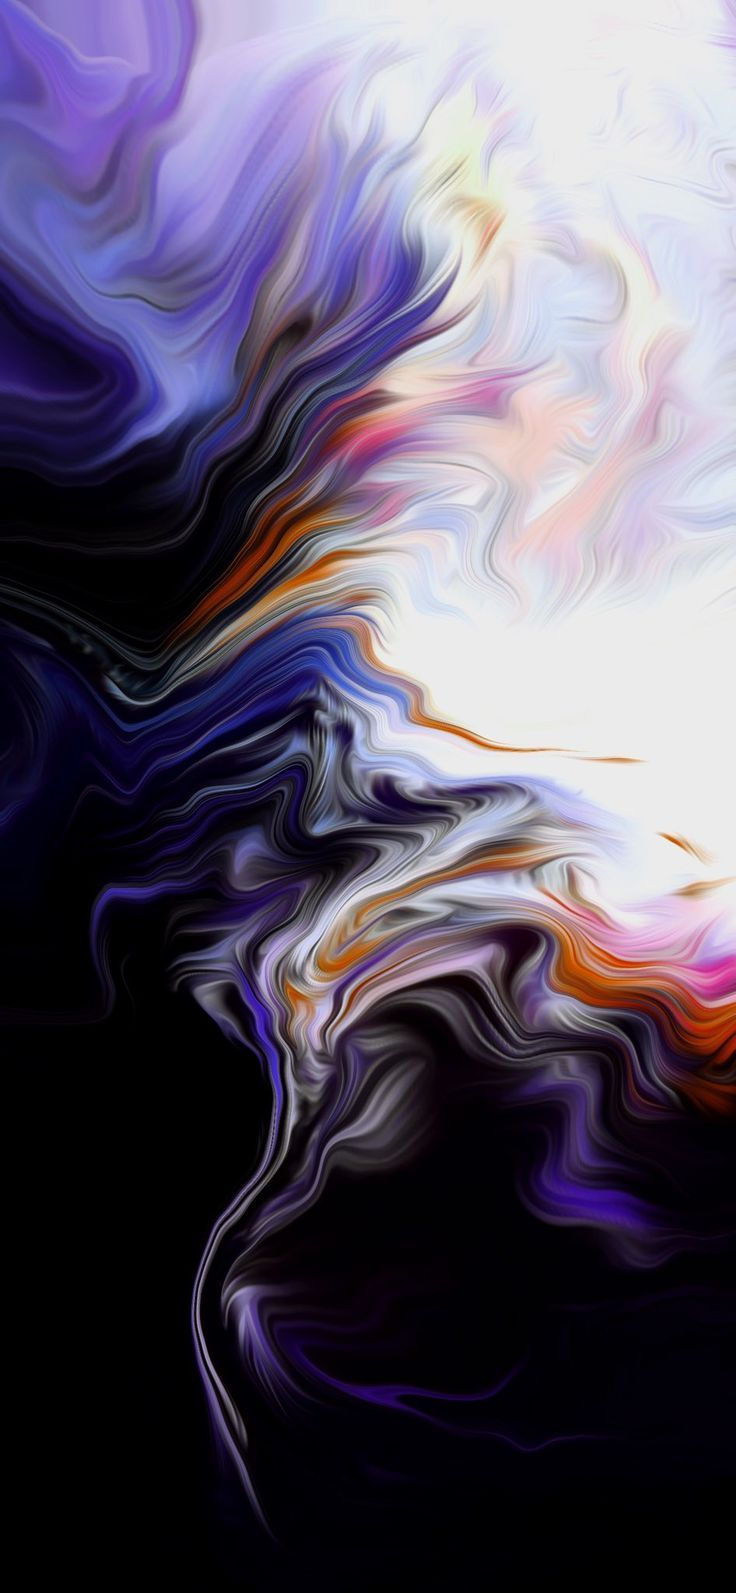 Abstract HD Wallpapers 788270741012489145 8